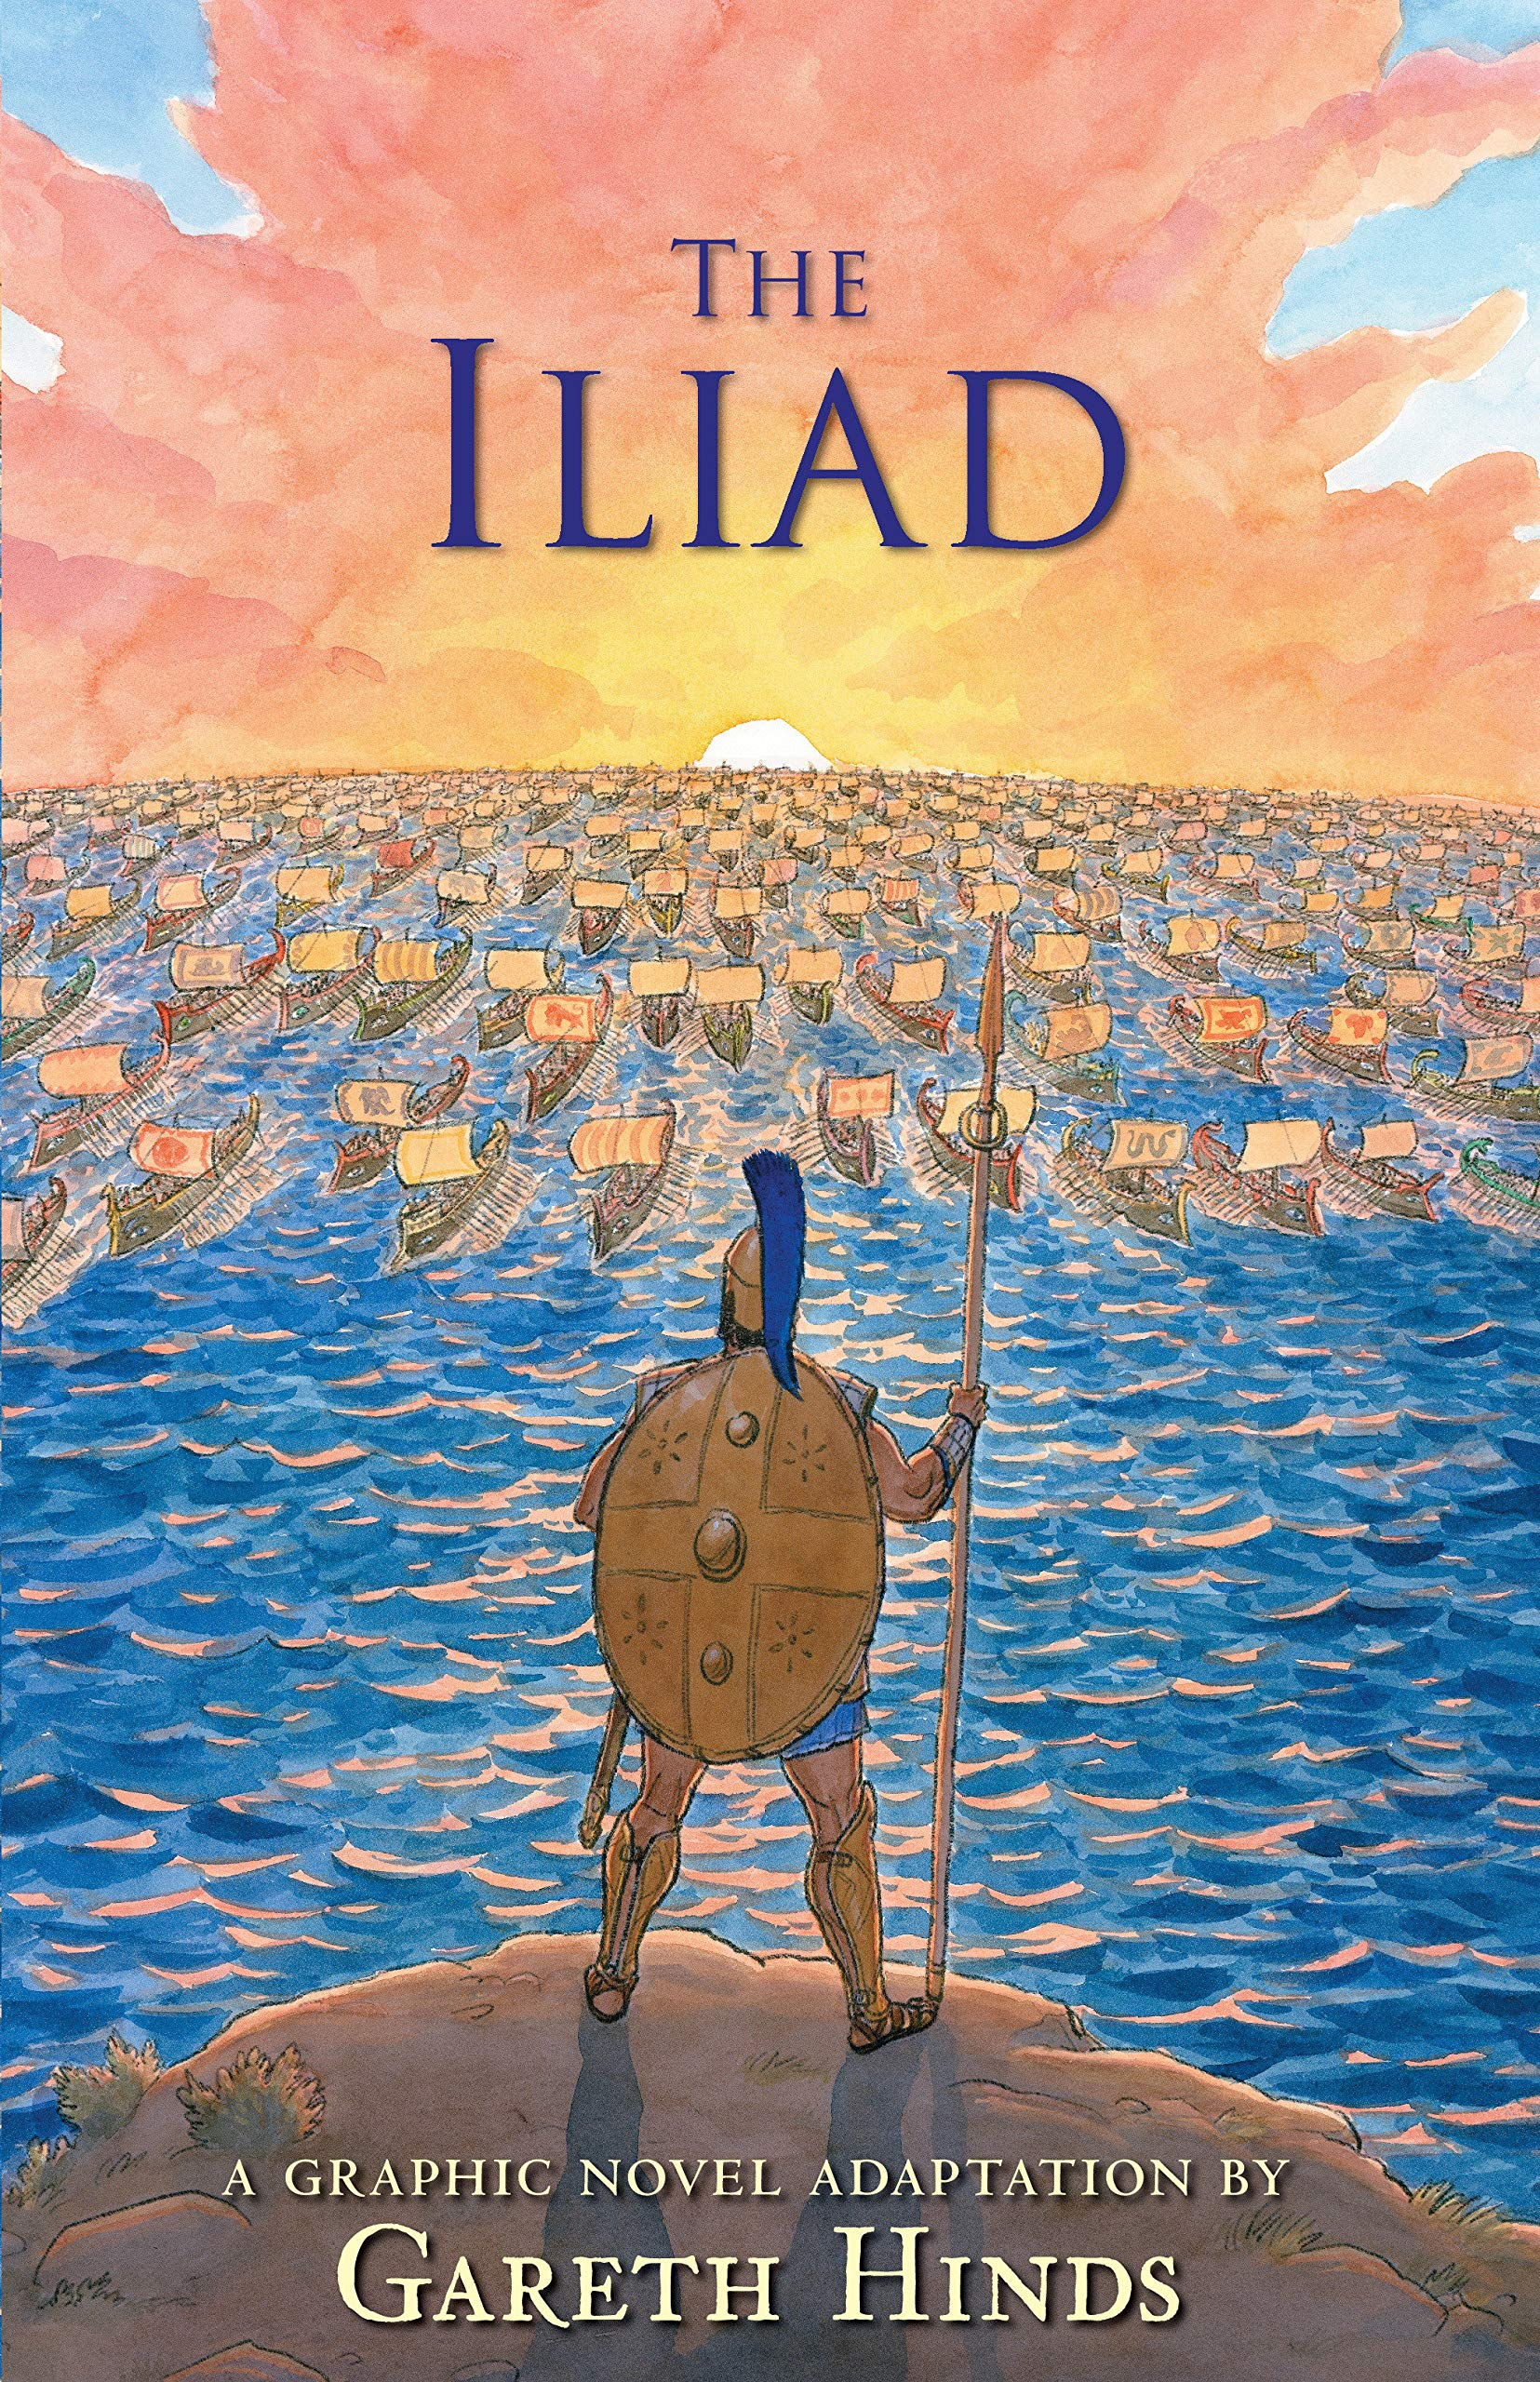 Review of The Iliad